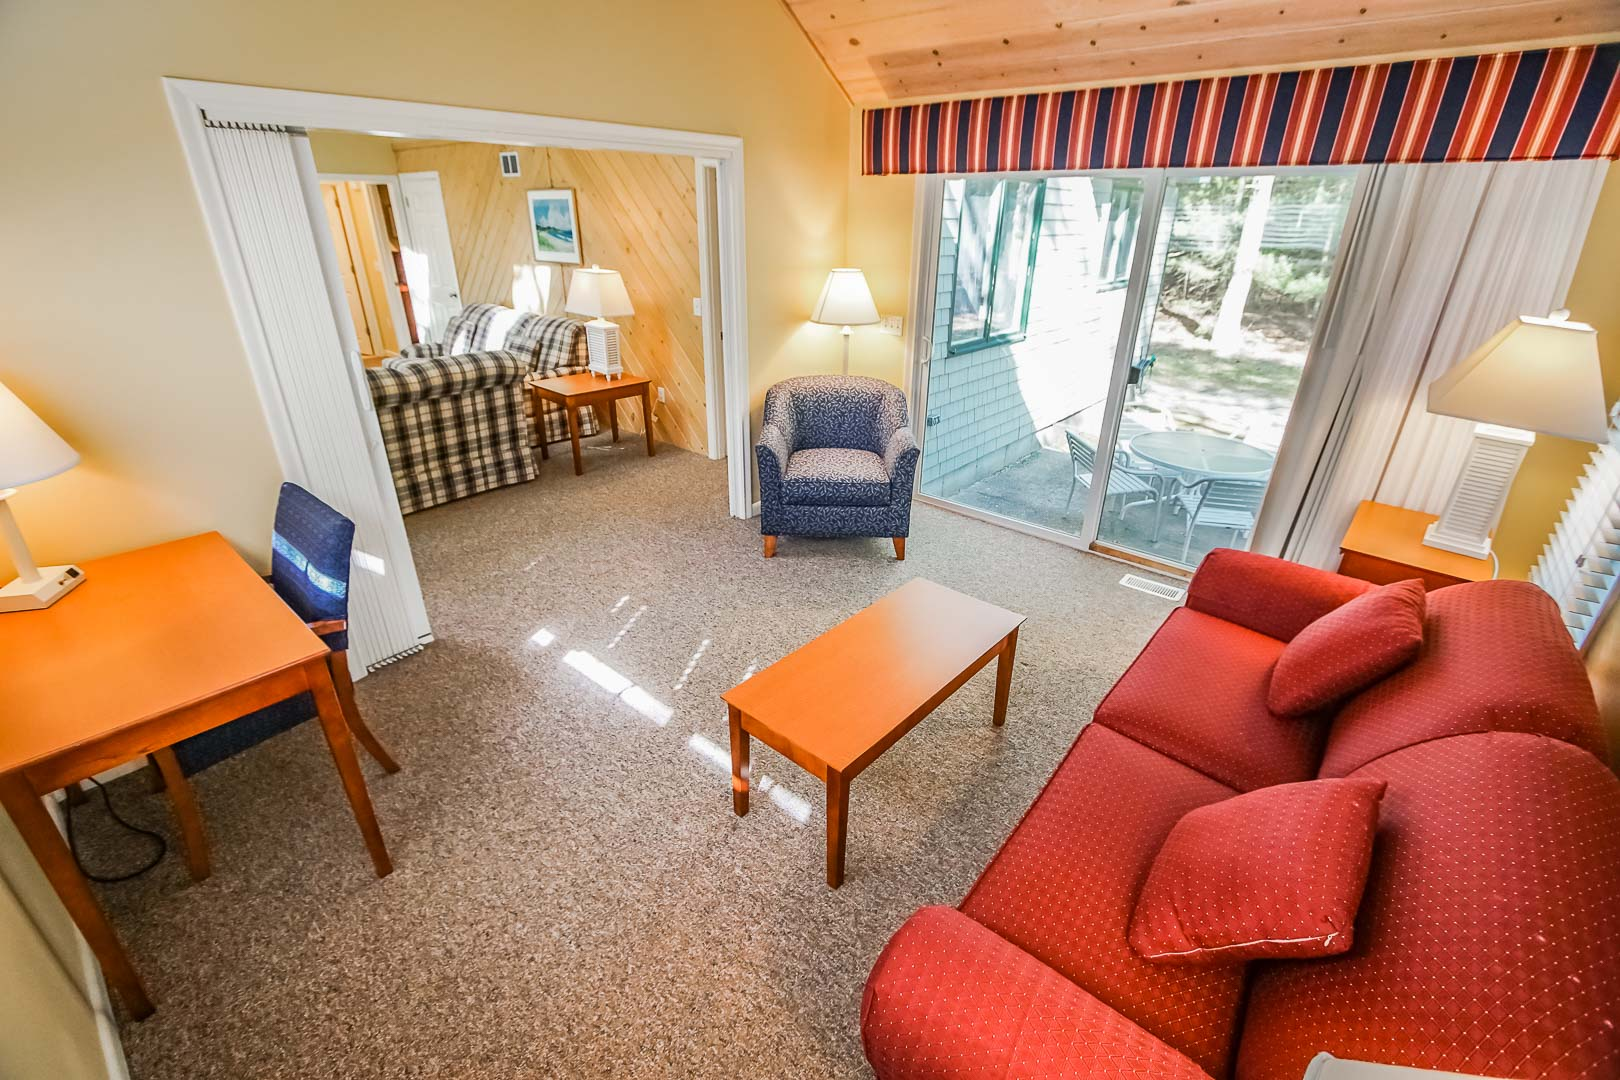 A spacious one bedroom unit with a living room area at VRI's Cape Cod Holiday Estates in Massachusetts.